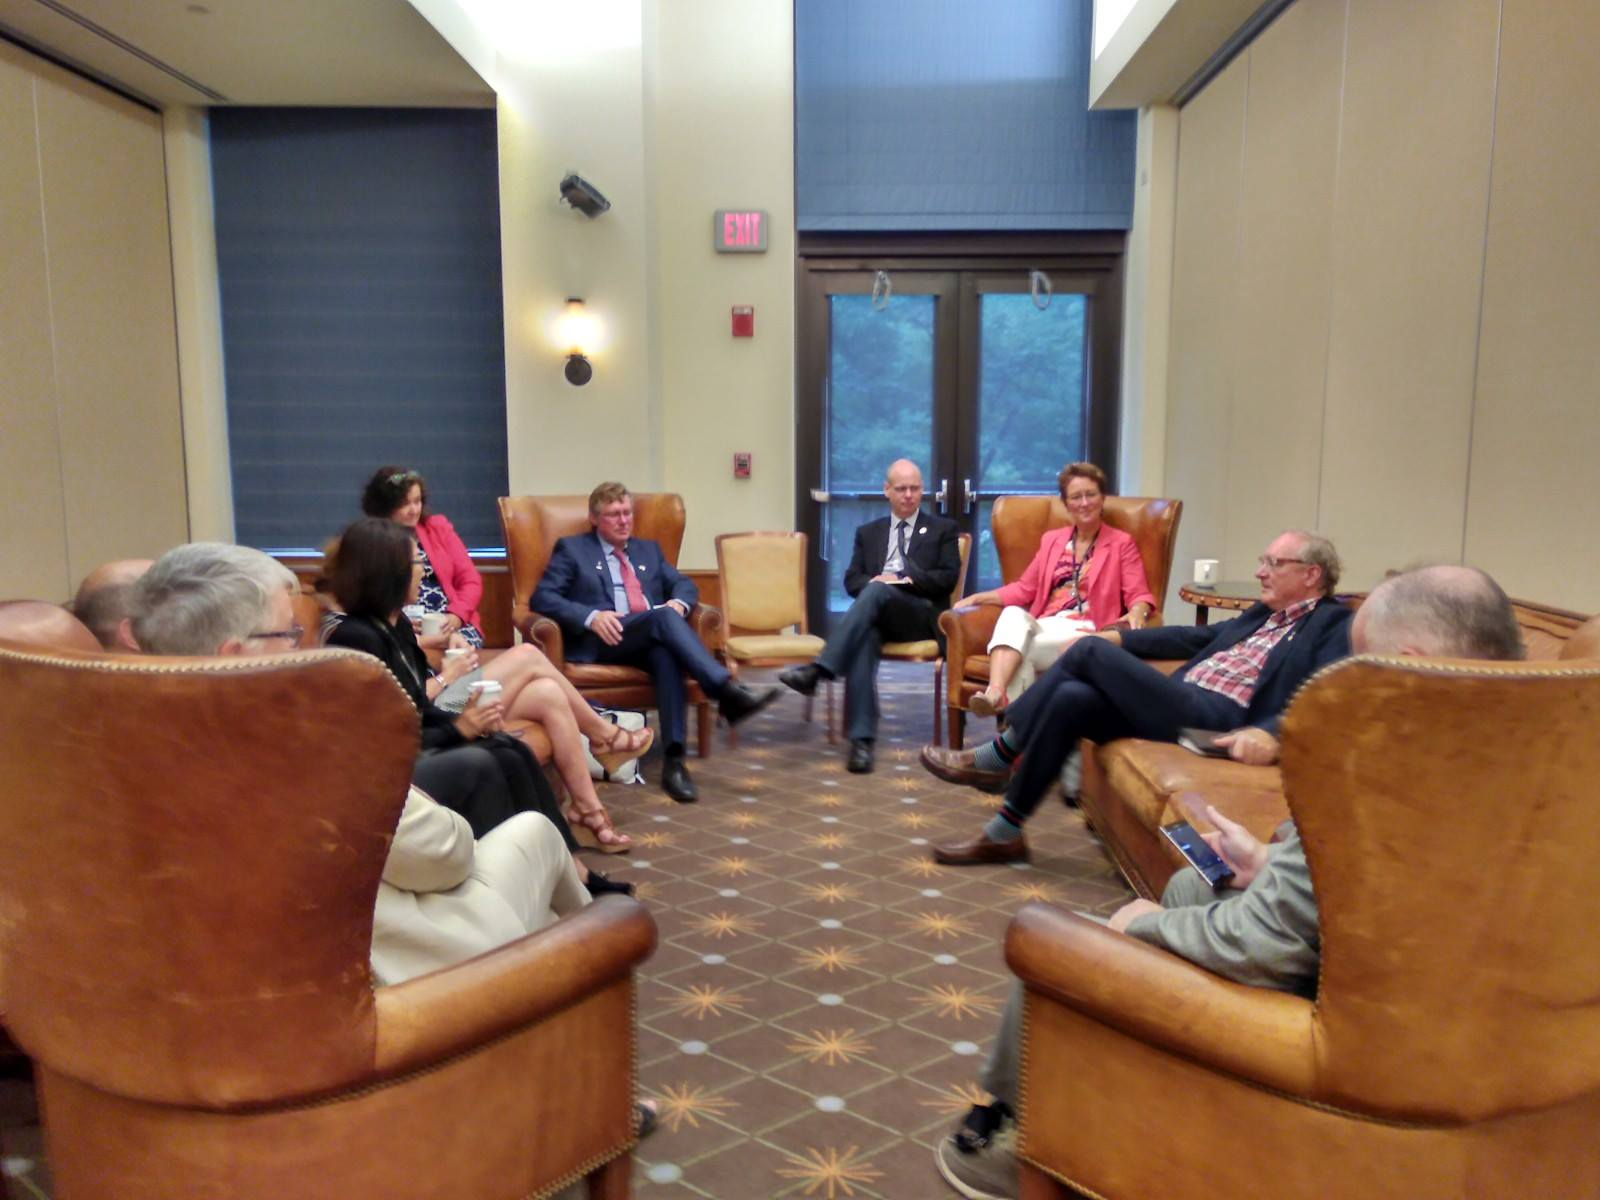 MacLauchlan meets with Premiers and Governors in Vermont